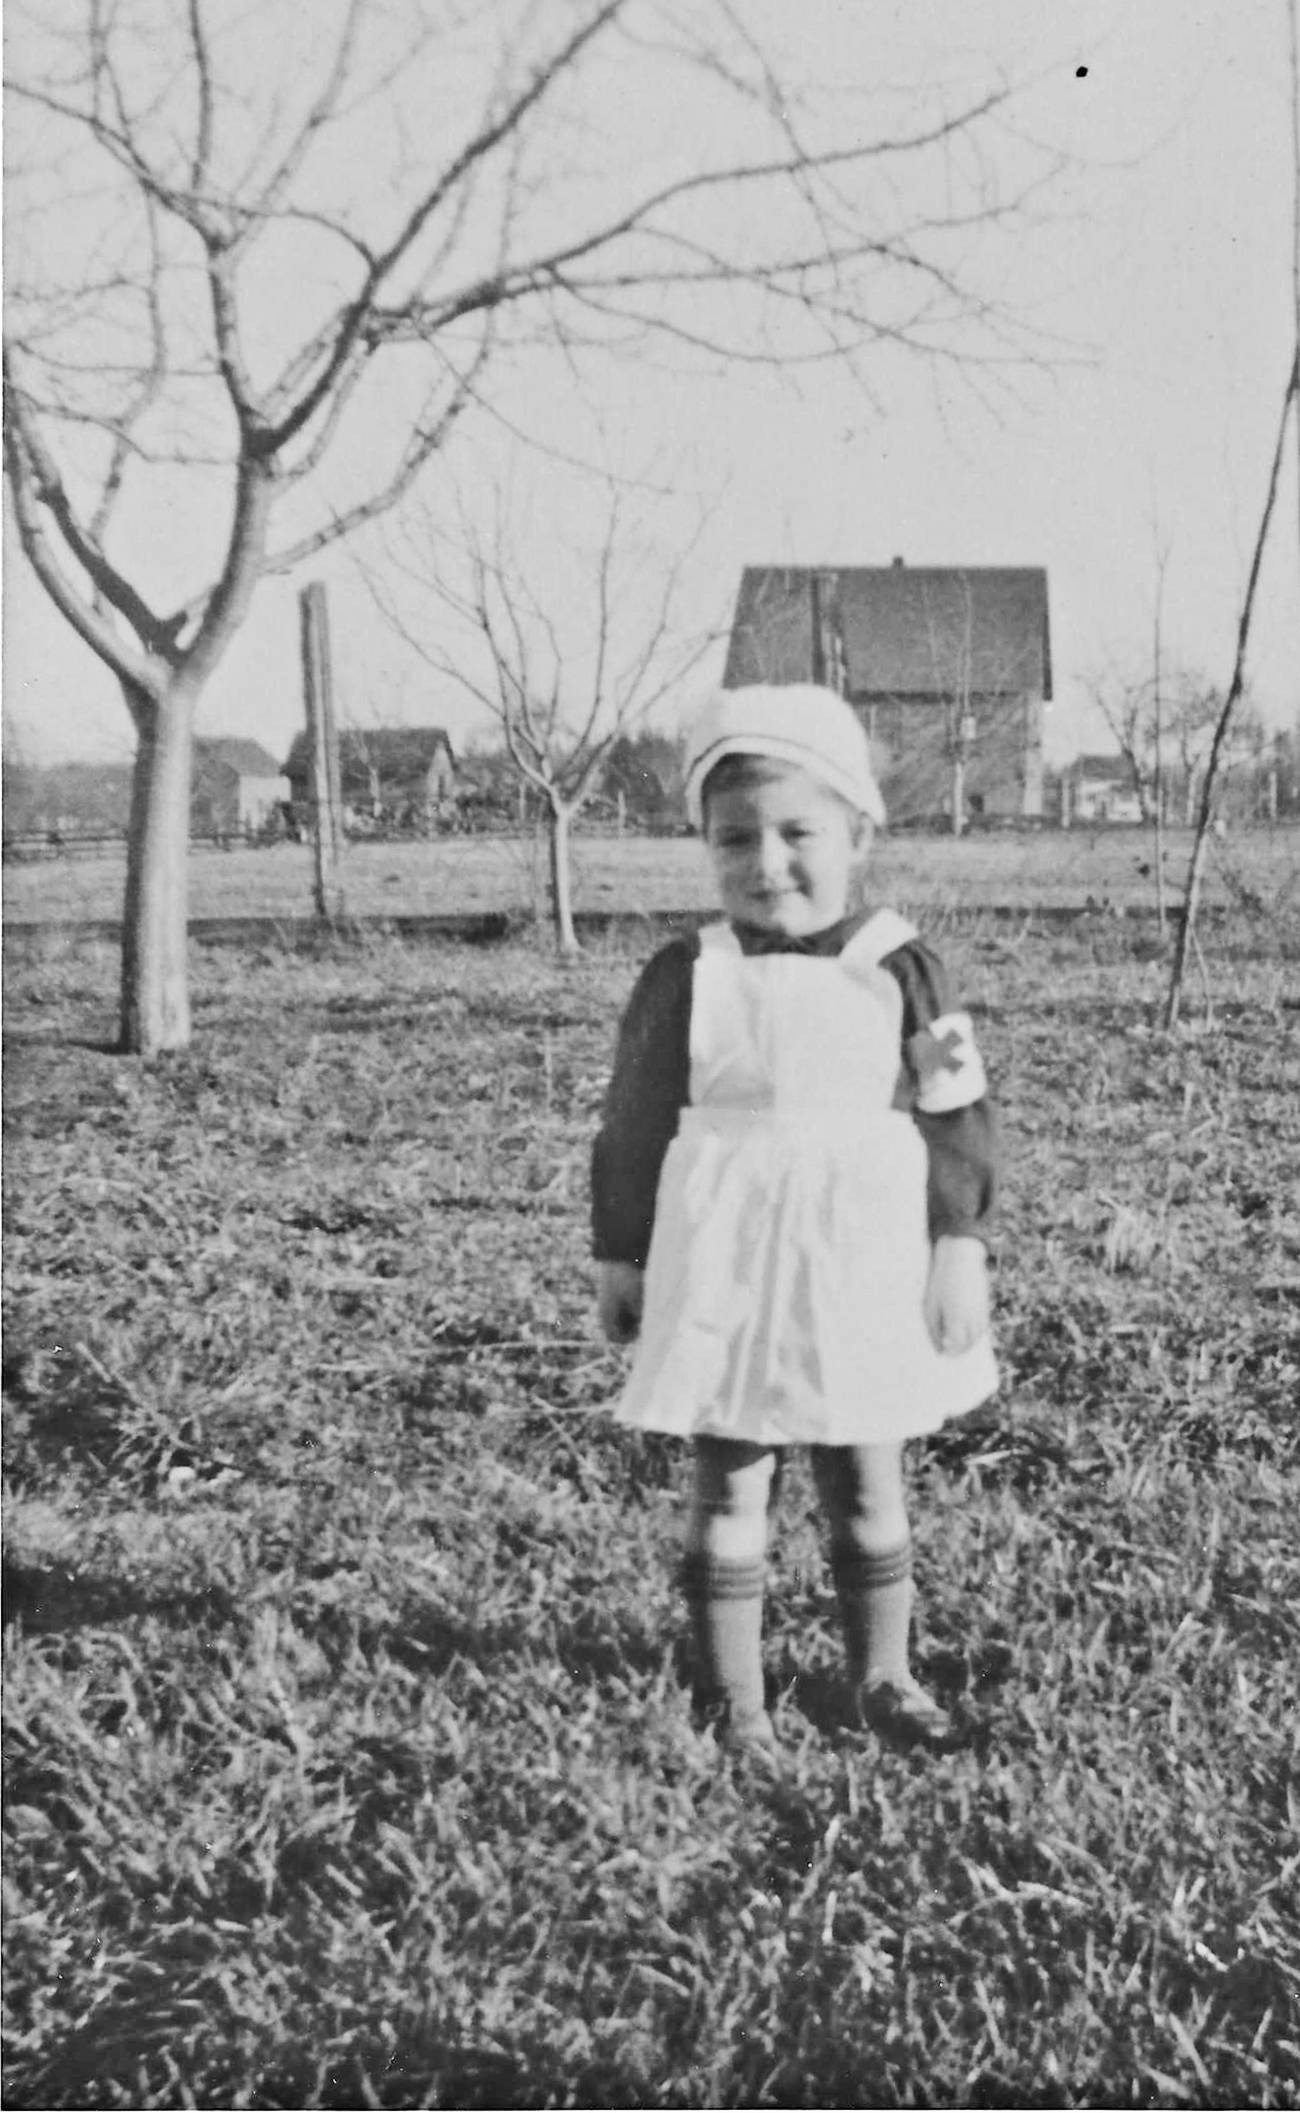 Kay Palmer (née Barichello) was about three when she was photographed in a nurse's outfit on the family home on 48th Avenue. This was approximately five years before Langley's hospital opened. Palmer worked as a nurse at the hospital for many years. (Palmer family/Special to the Langley Advance Times)